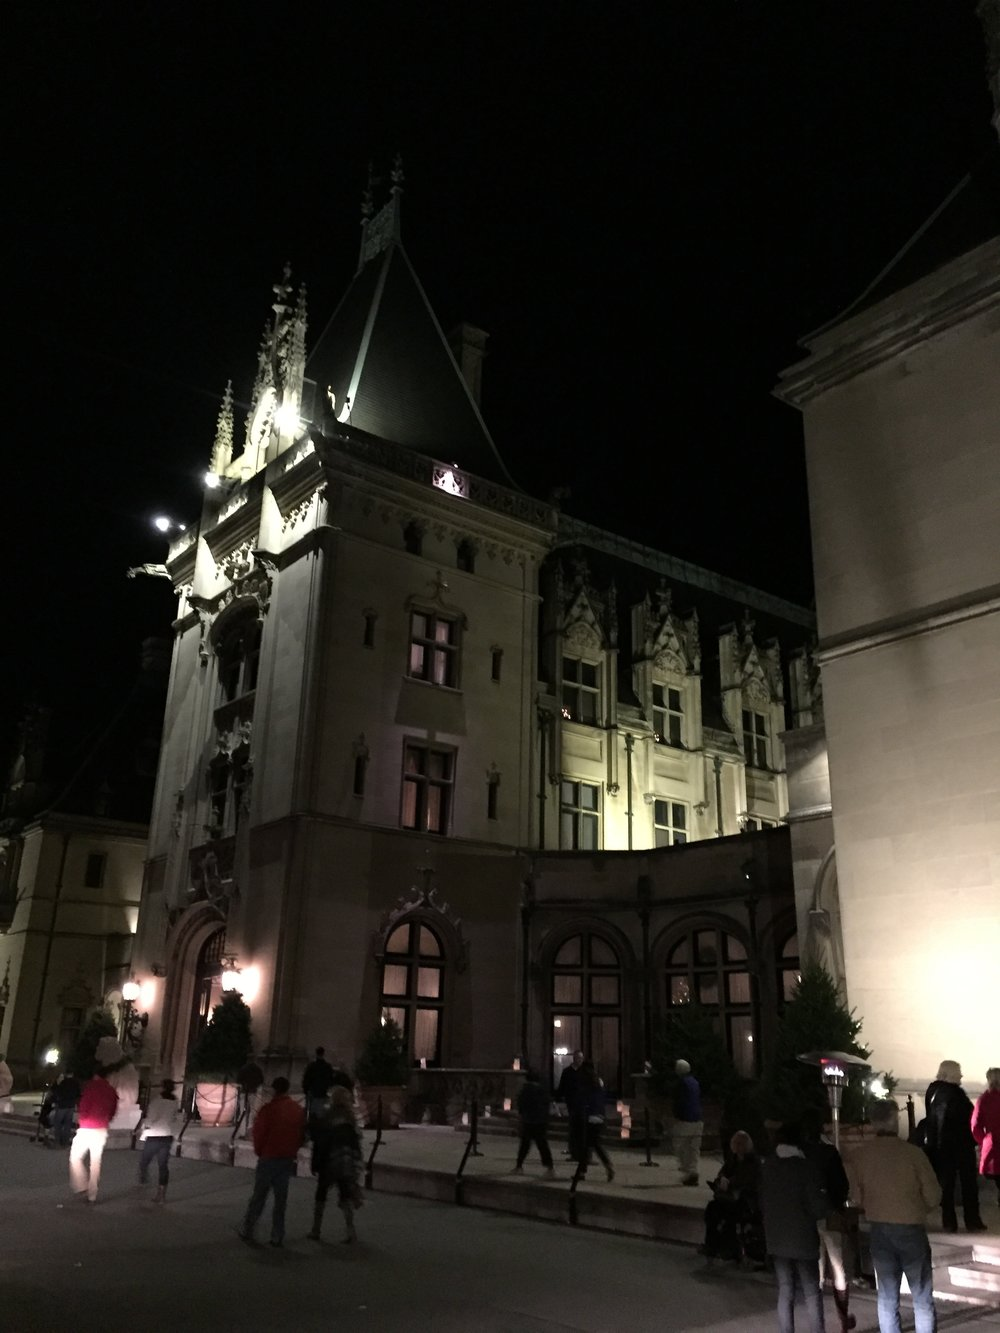 The front of Biltmore House is brightly lit at night. (click to enlarge)